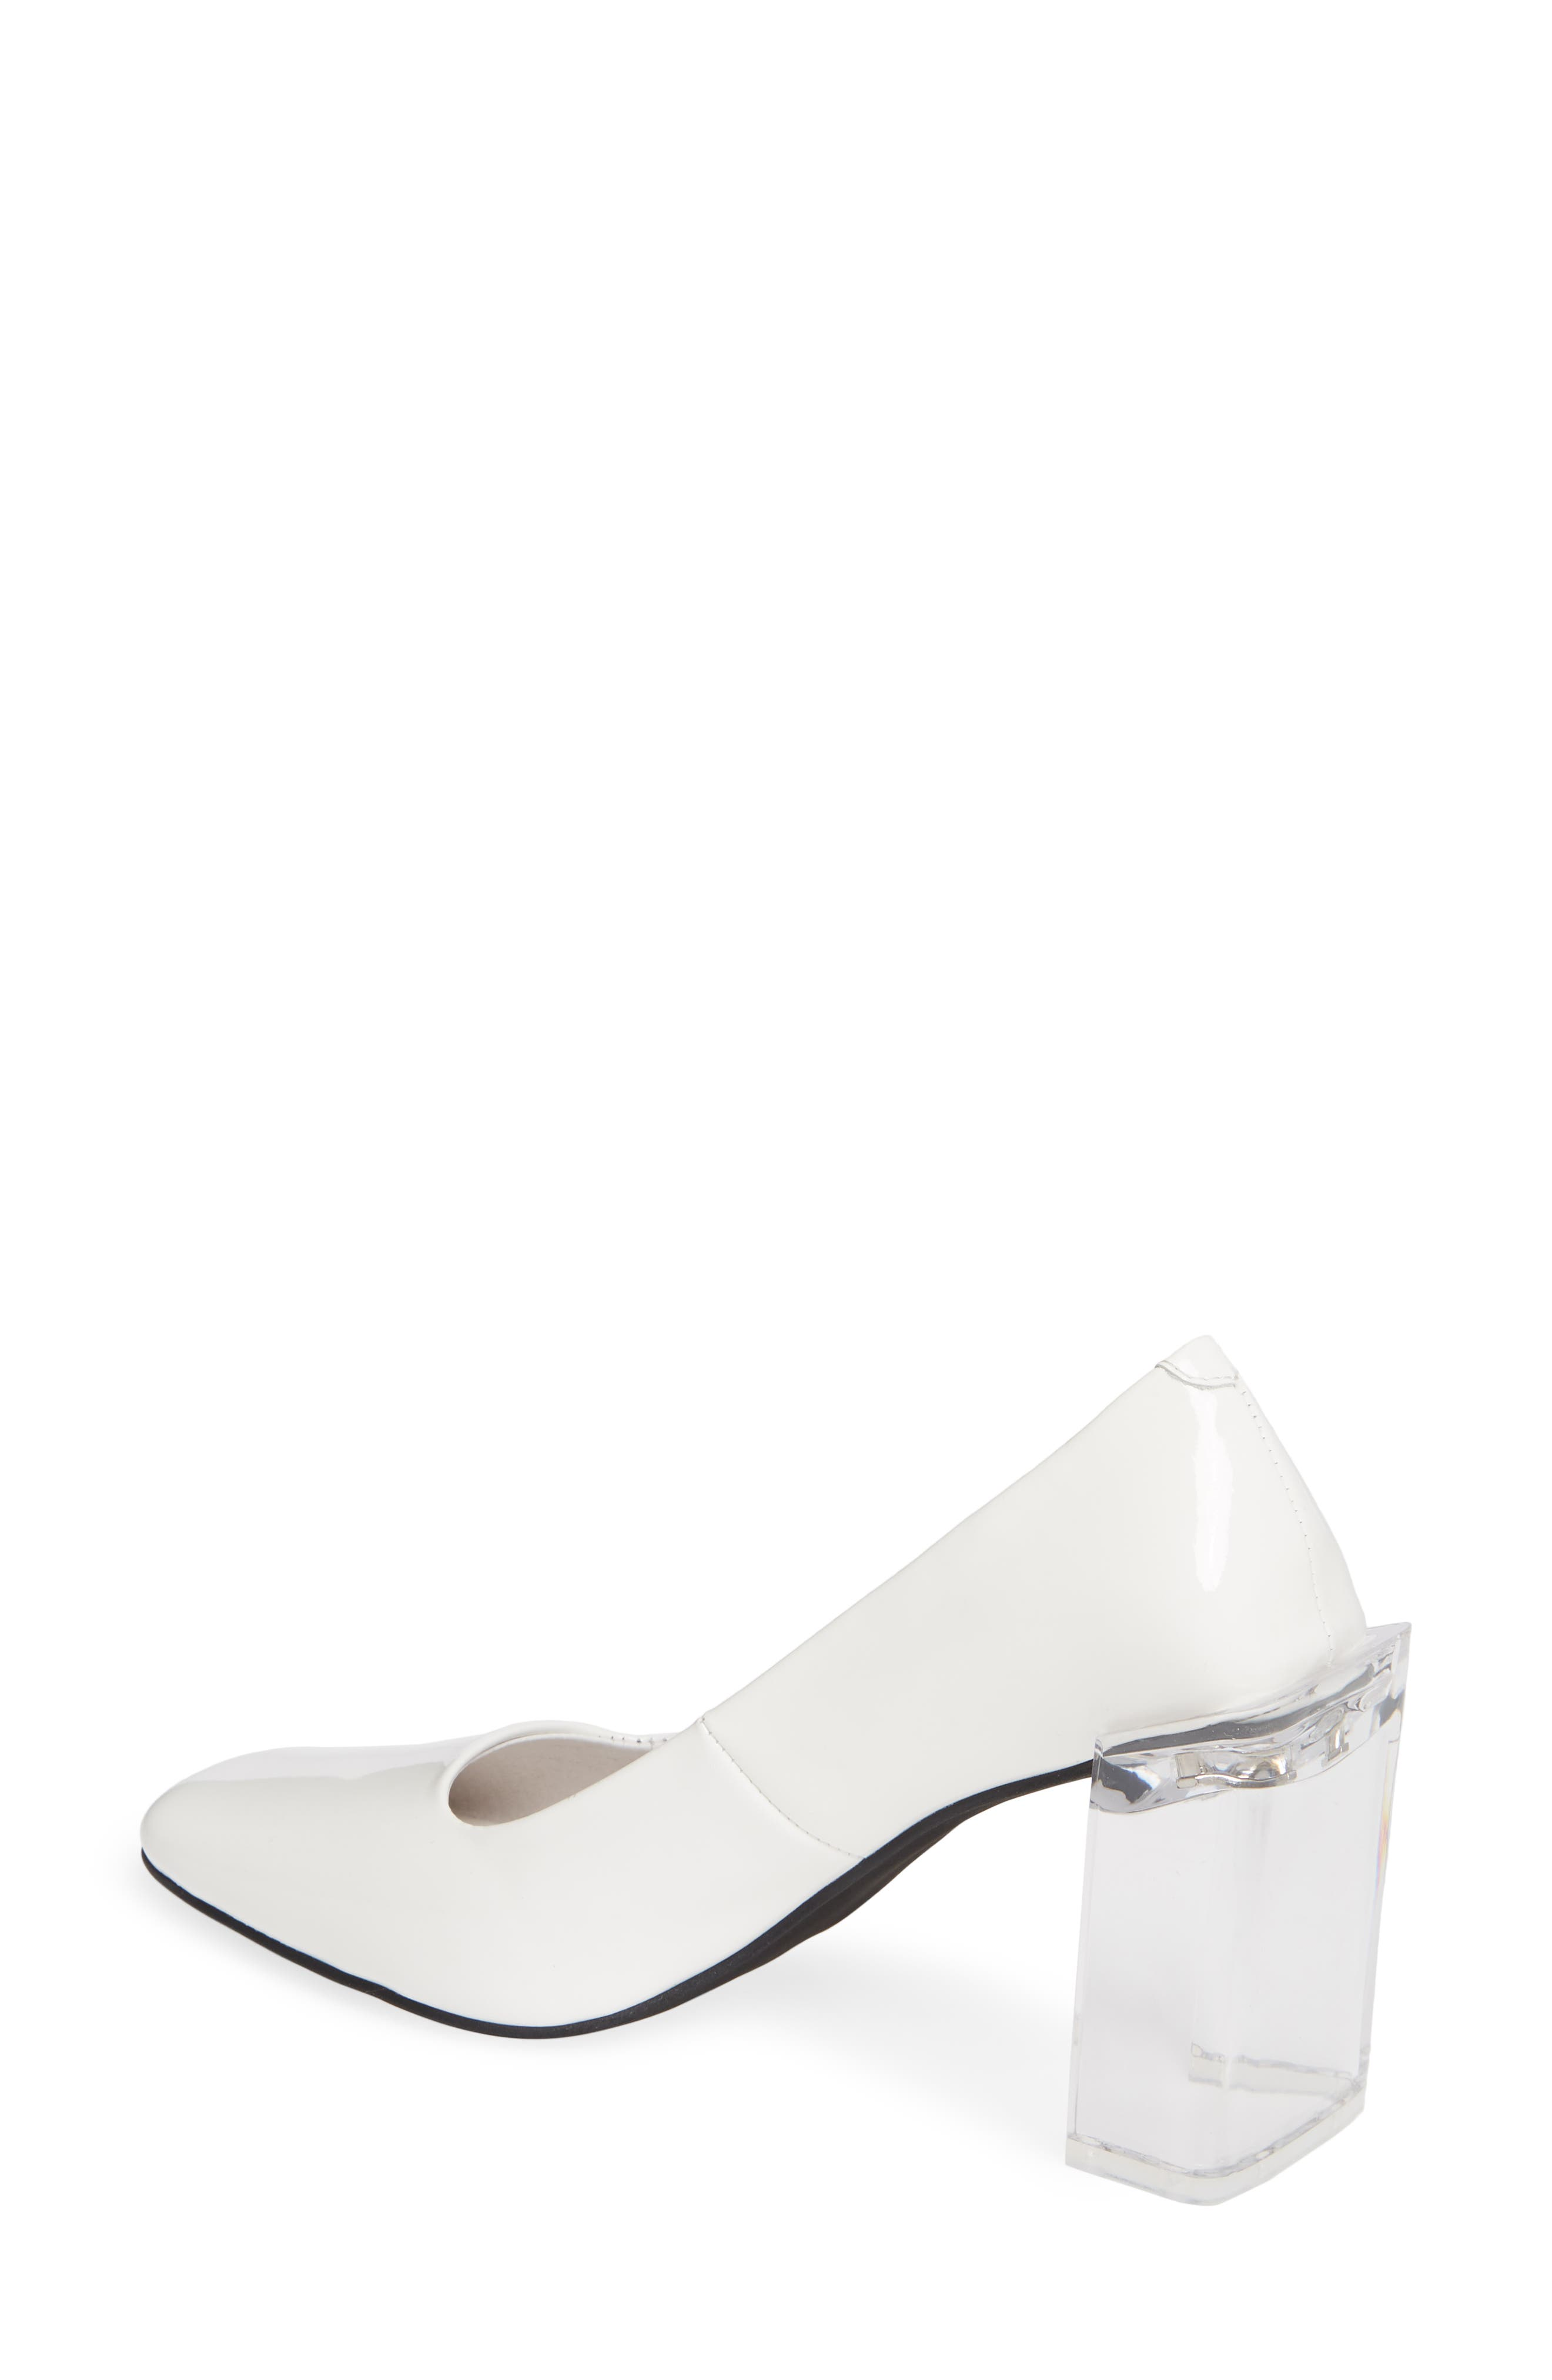 JEFFREY CAMPBELL, Graff Clear Heel Pump, Alternate thumbnail 2, color, WHITE PATENT LEATHER